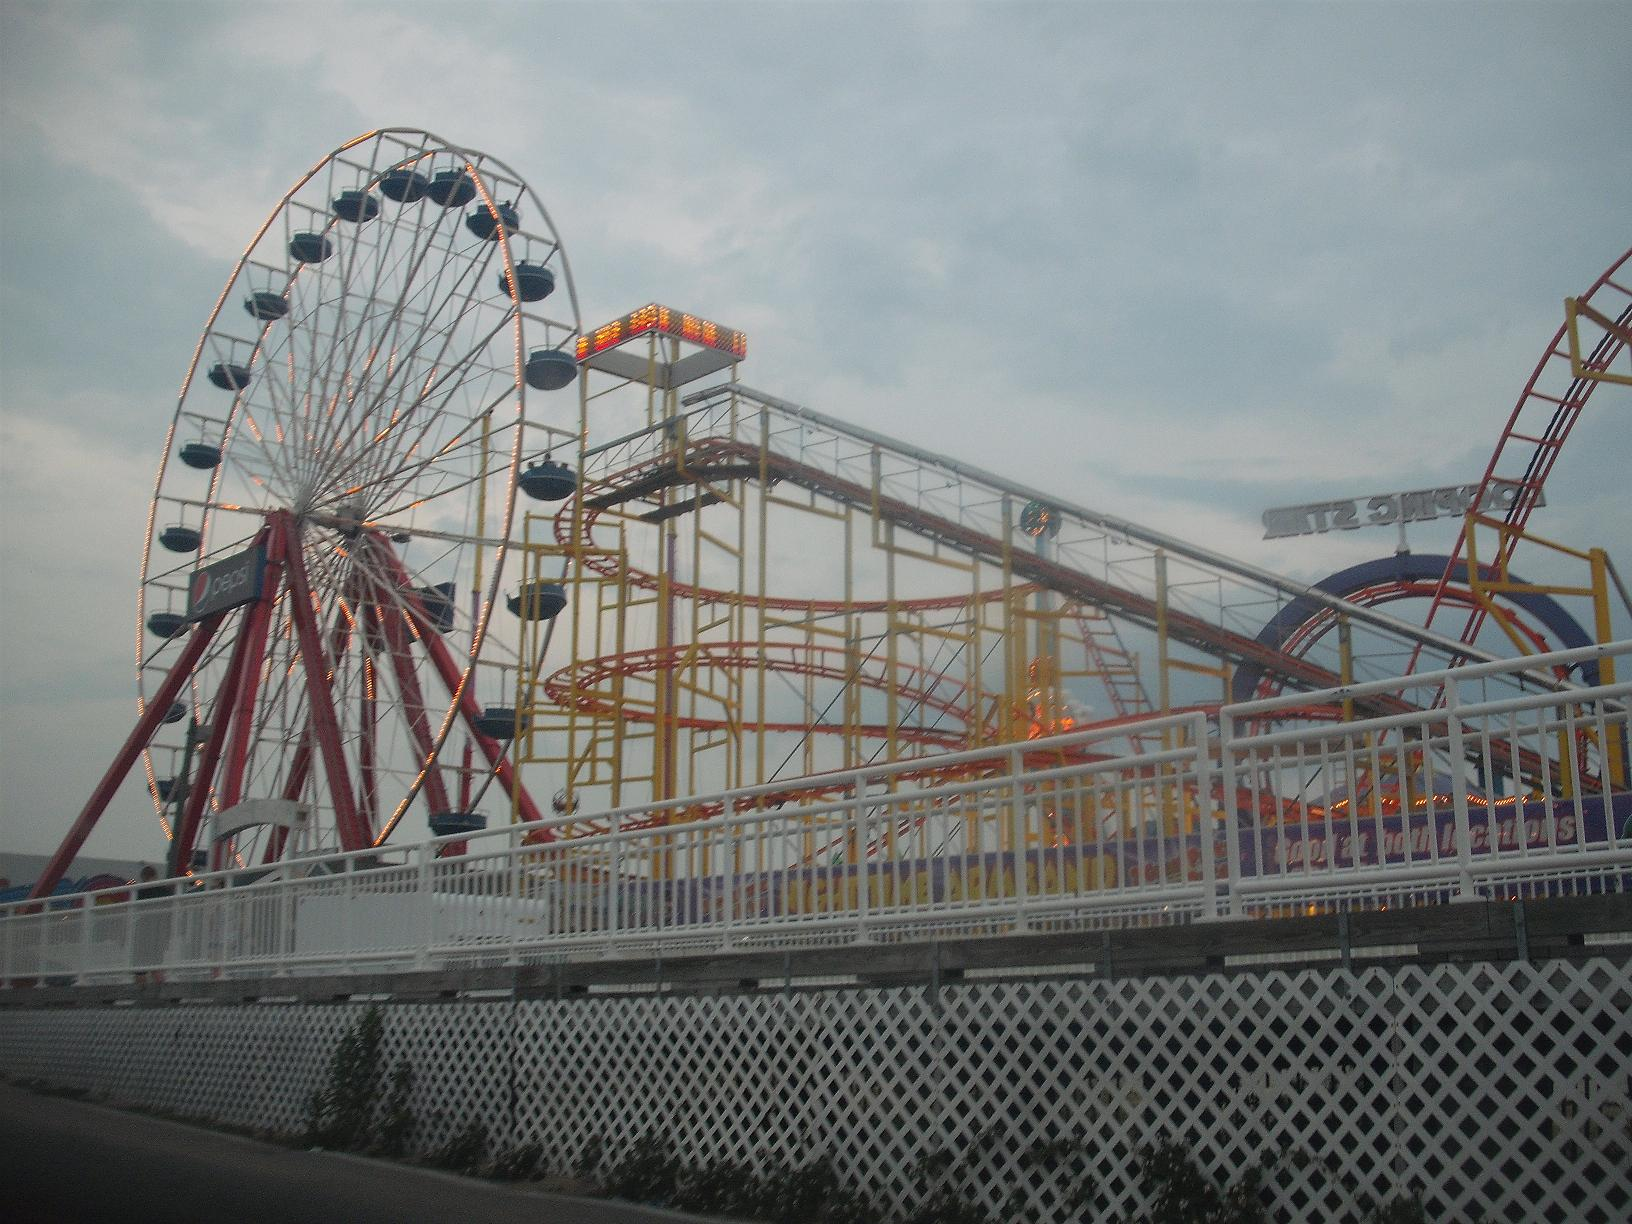 Ocean City Maryland Carnival Rides at the Pier